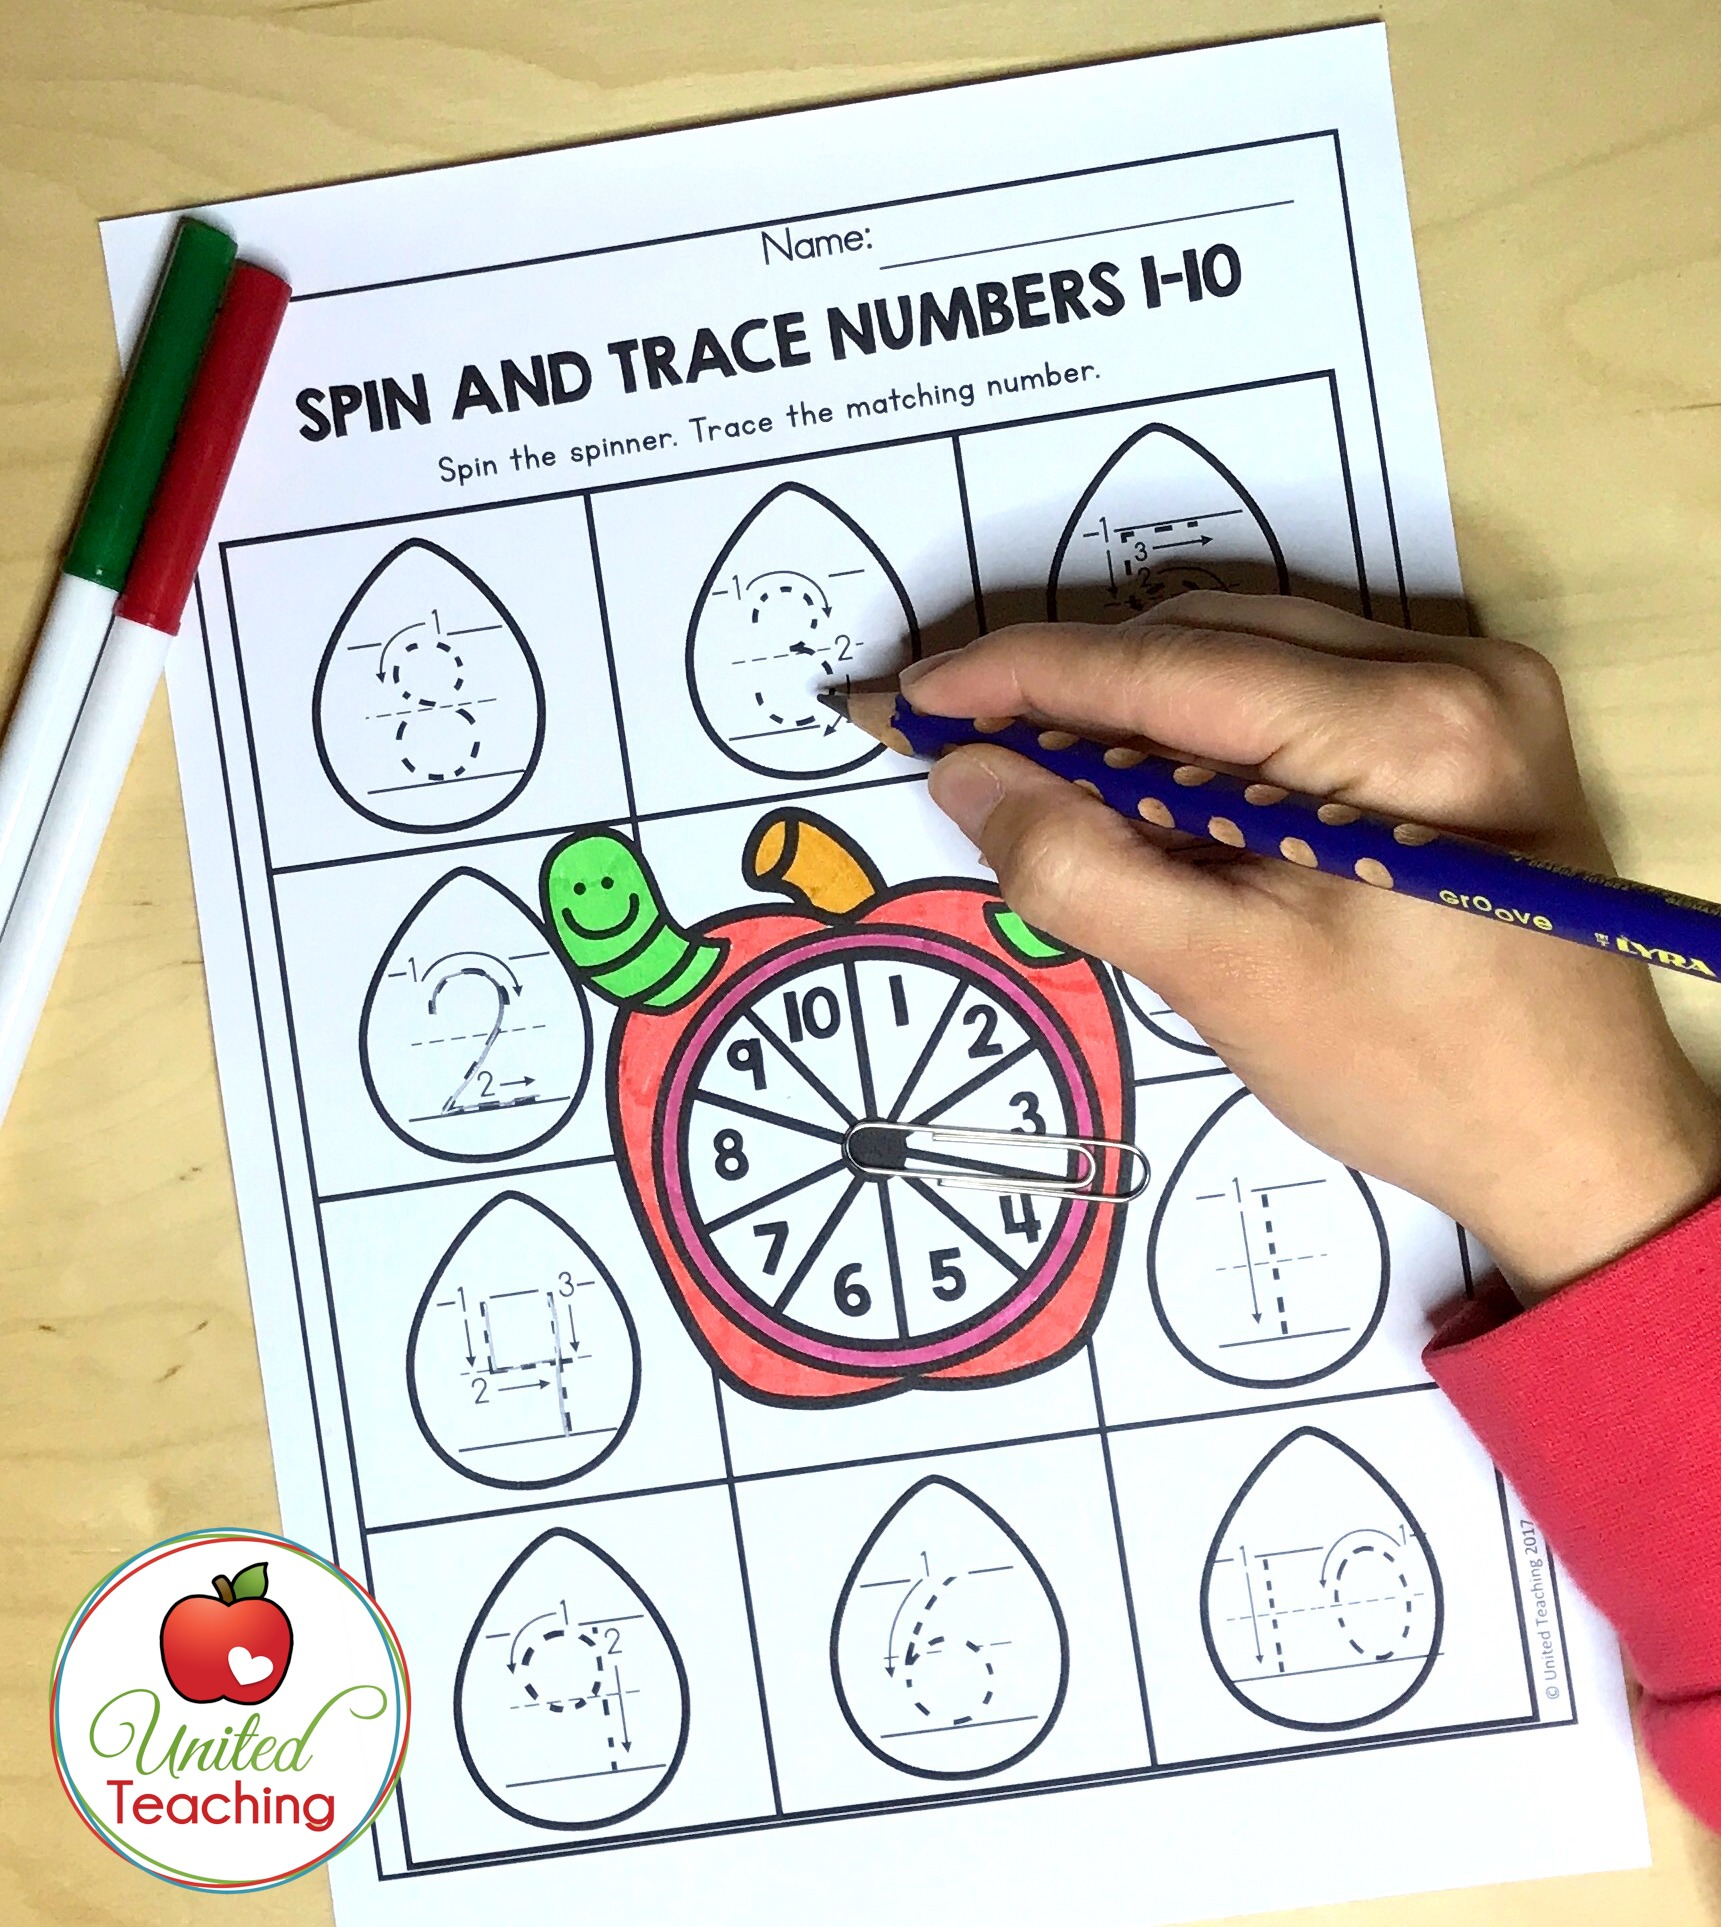 Spin and Trace Numbers 1-10